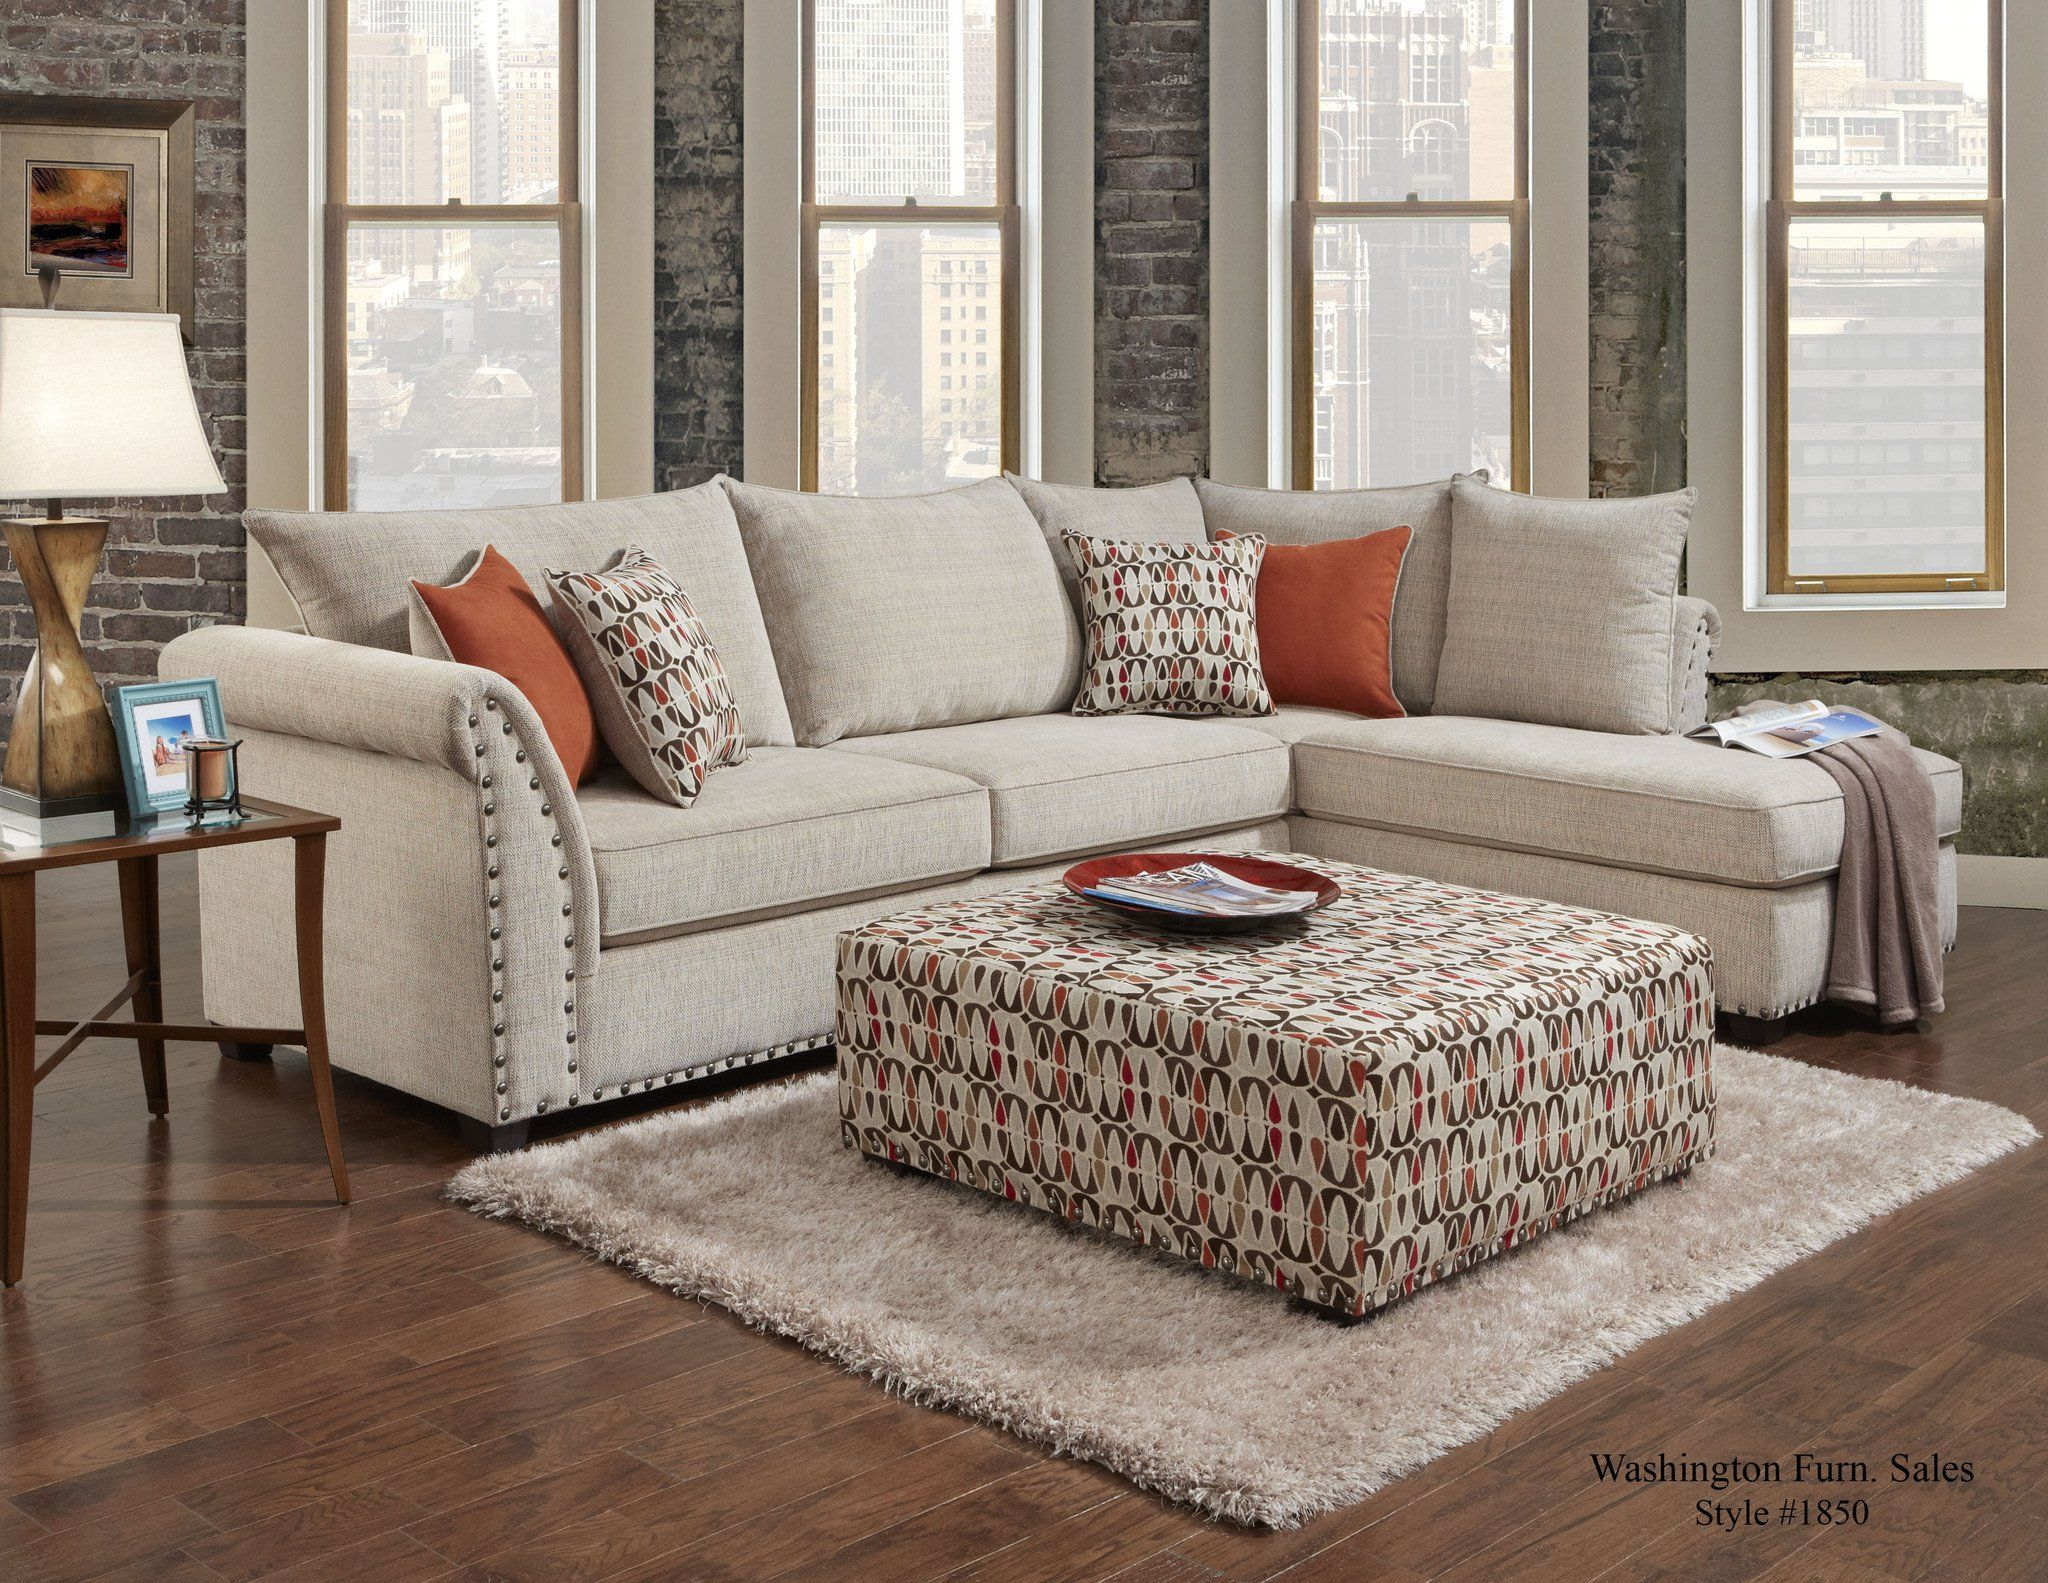 Washington Furniture 1850 Patton Beige Sectional